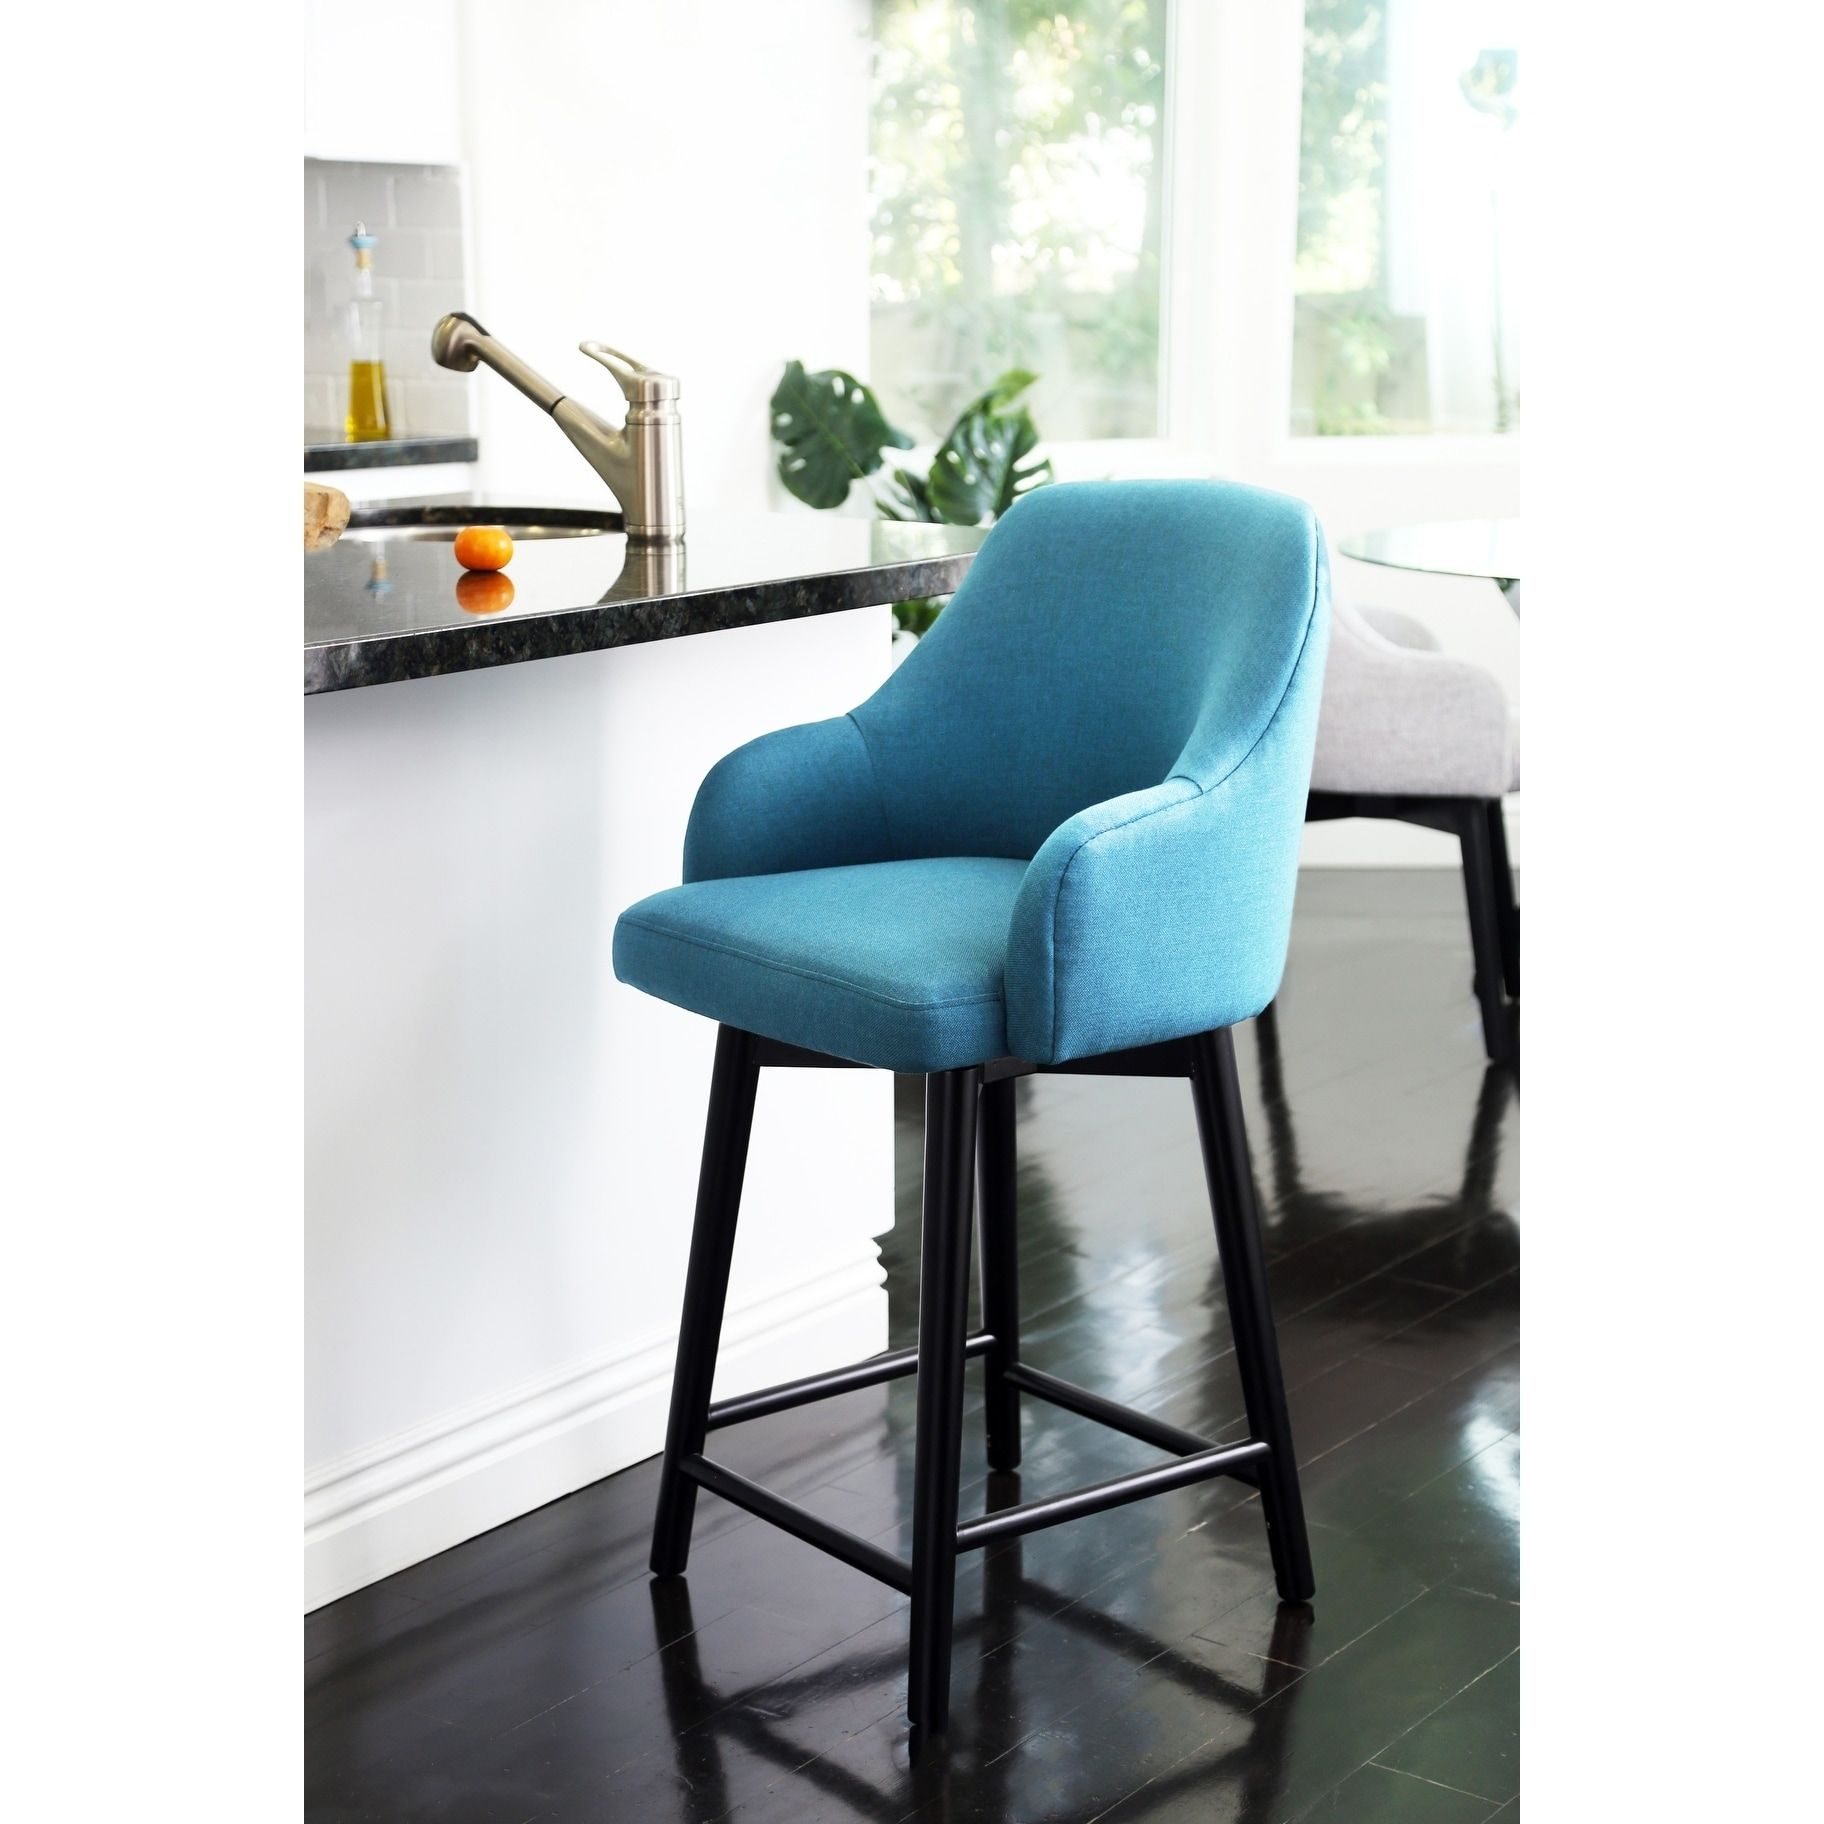 Astonishing Abbyson Abbott Upholstered 26 Inch Counter Stool Teal Blue Ocoug Best Dining Table And Chair Ideas Images Ocougorg